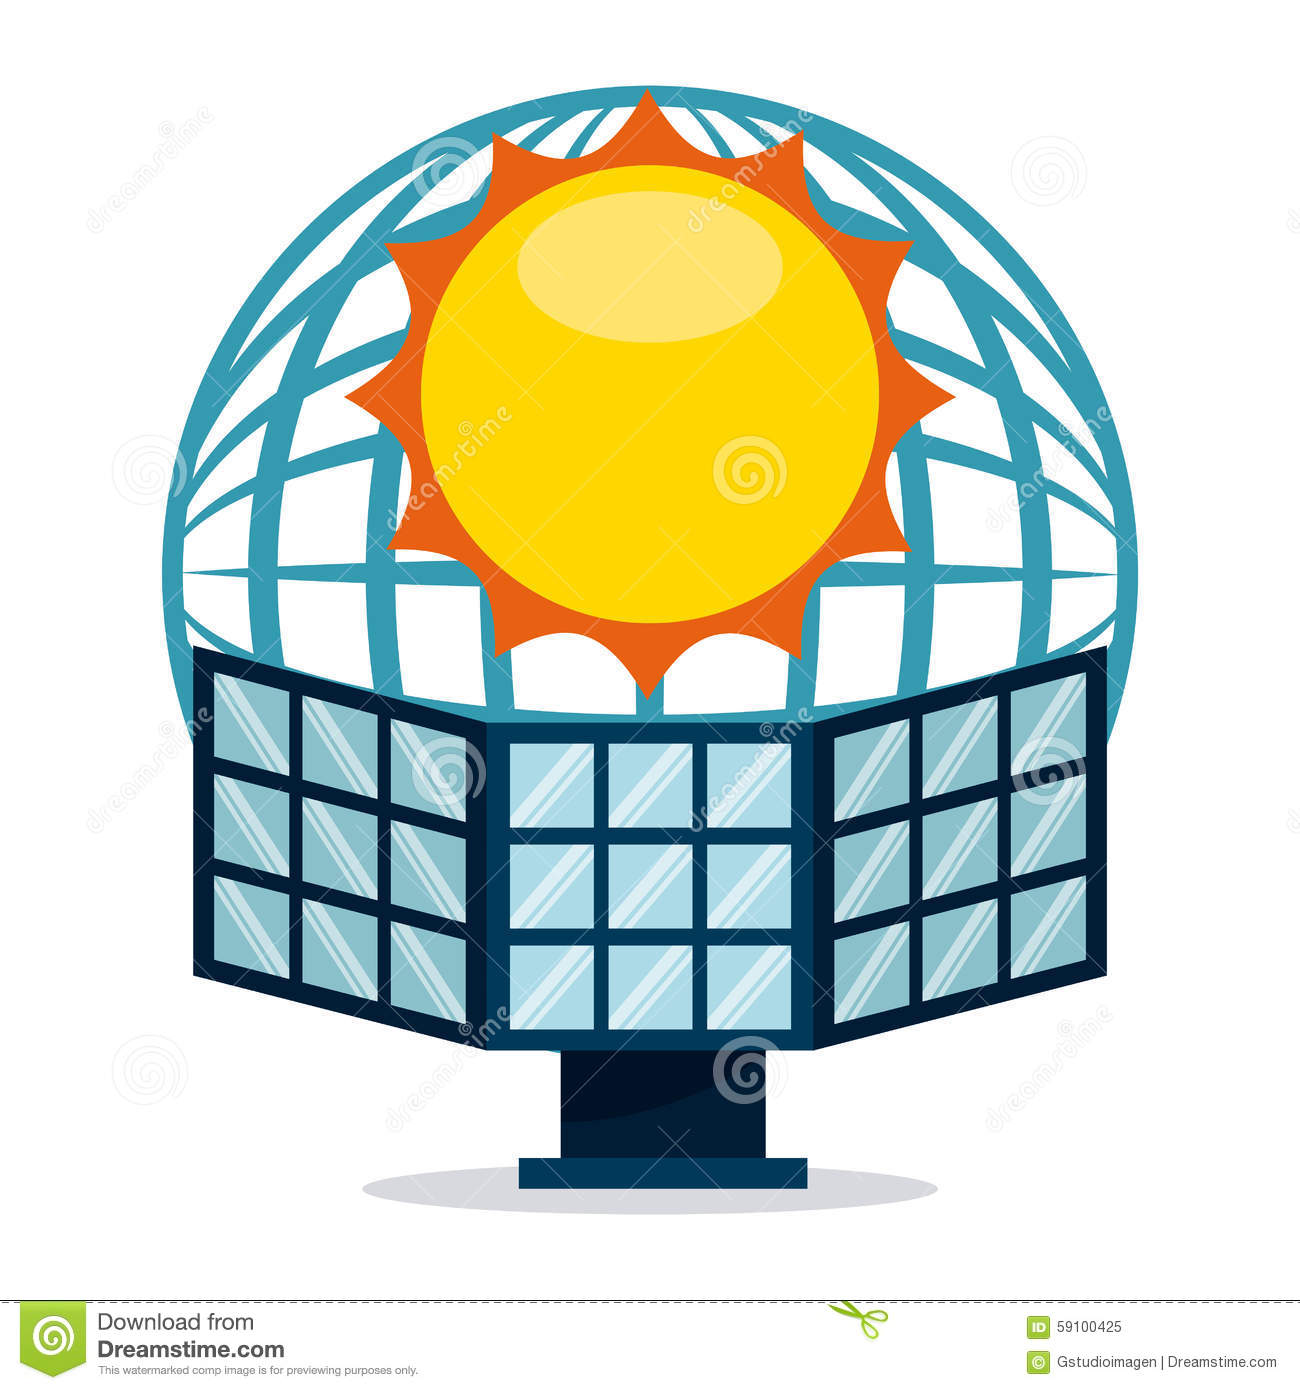 ieee research papers on solar energy We research how to make  holmgren et al 43th ieee pvsc proceedings, an open source solar power forecasting tool using  lonij et al solar energy 97 58-66,.